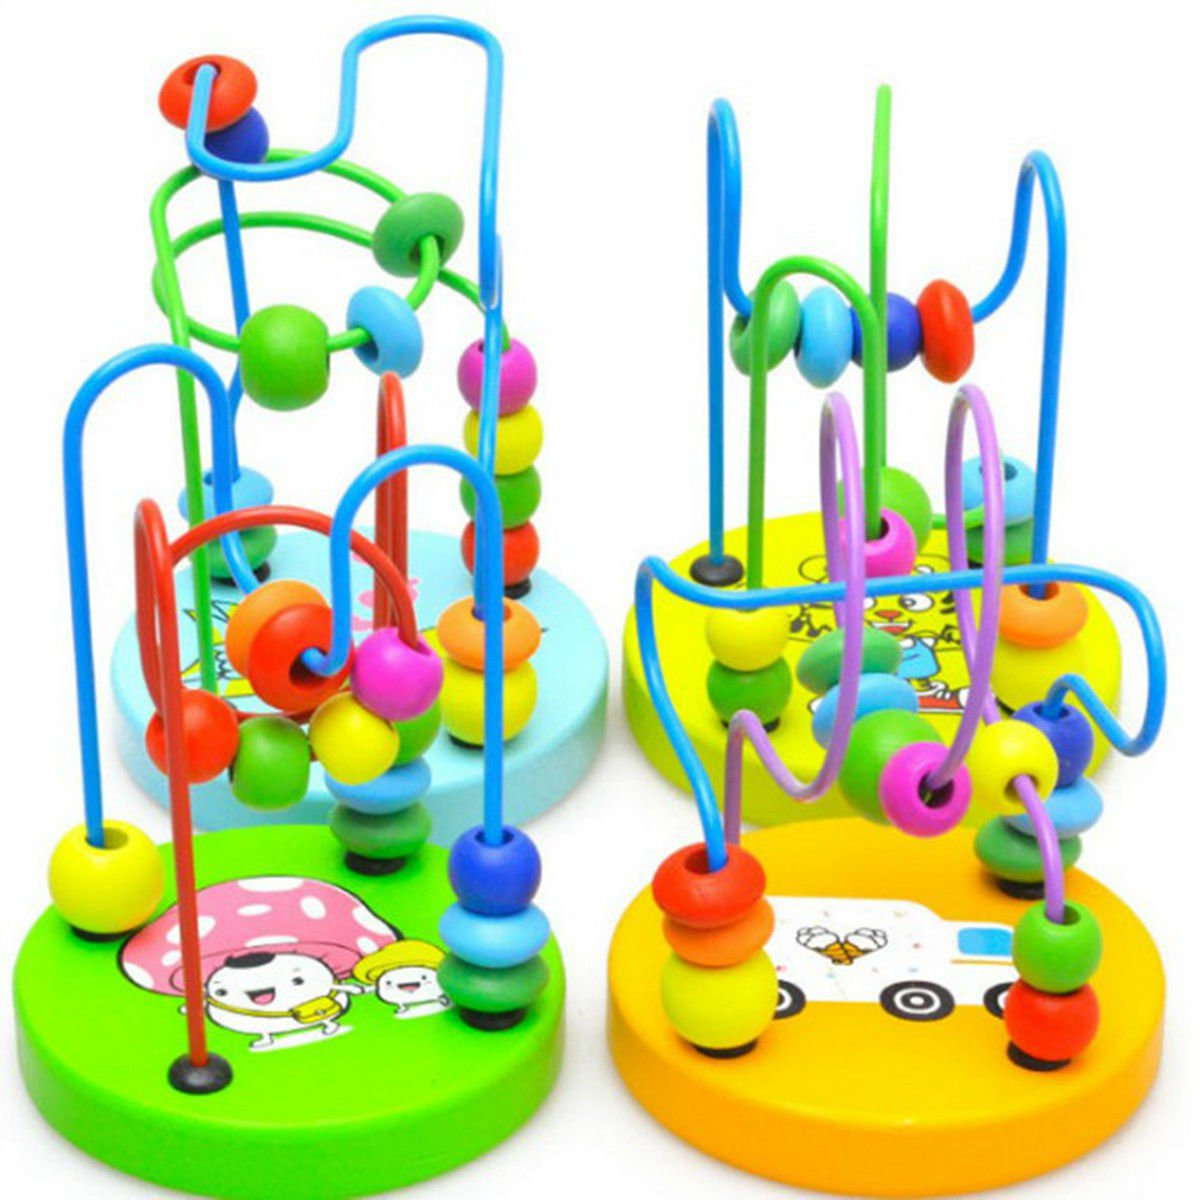 1pc Baby Kids Children Colorful Wooden Around Beads Educational Game Toy Mini db